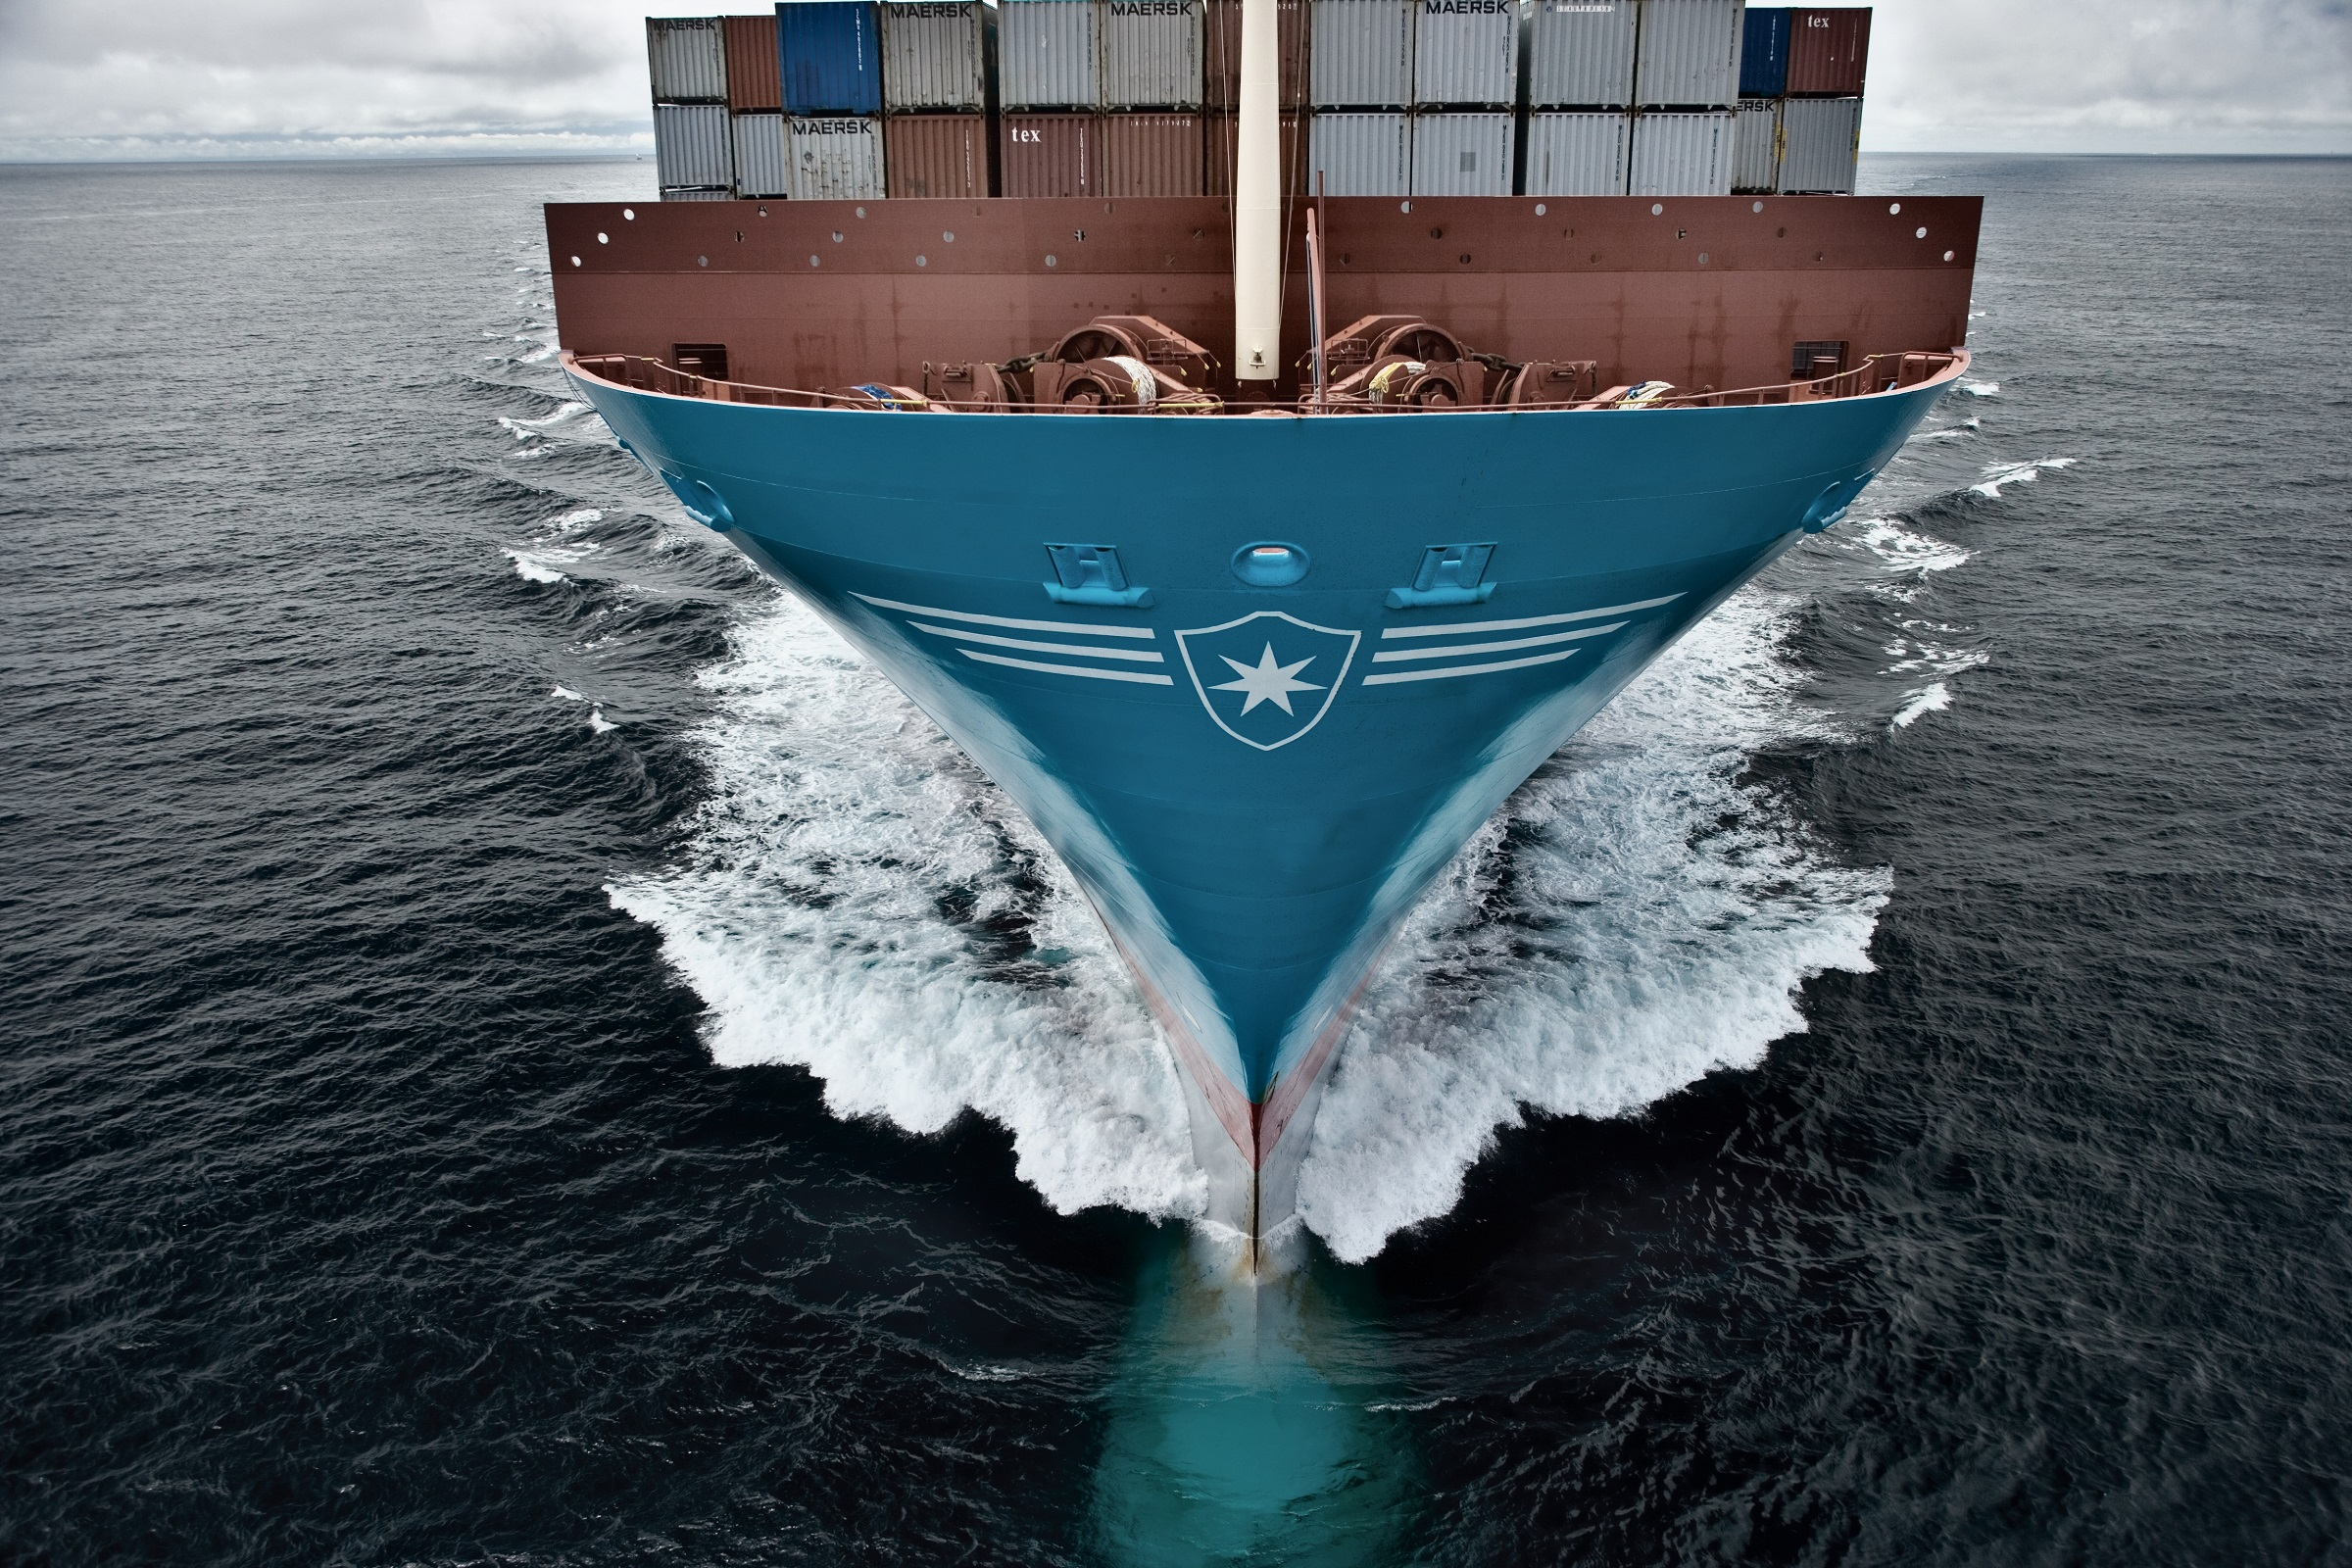 Maersk Line enters deals to recycle eight vessels